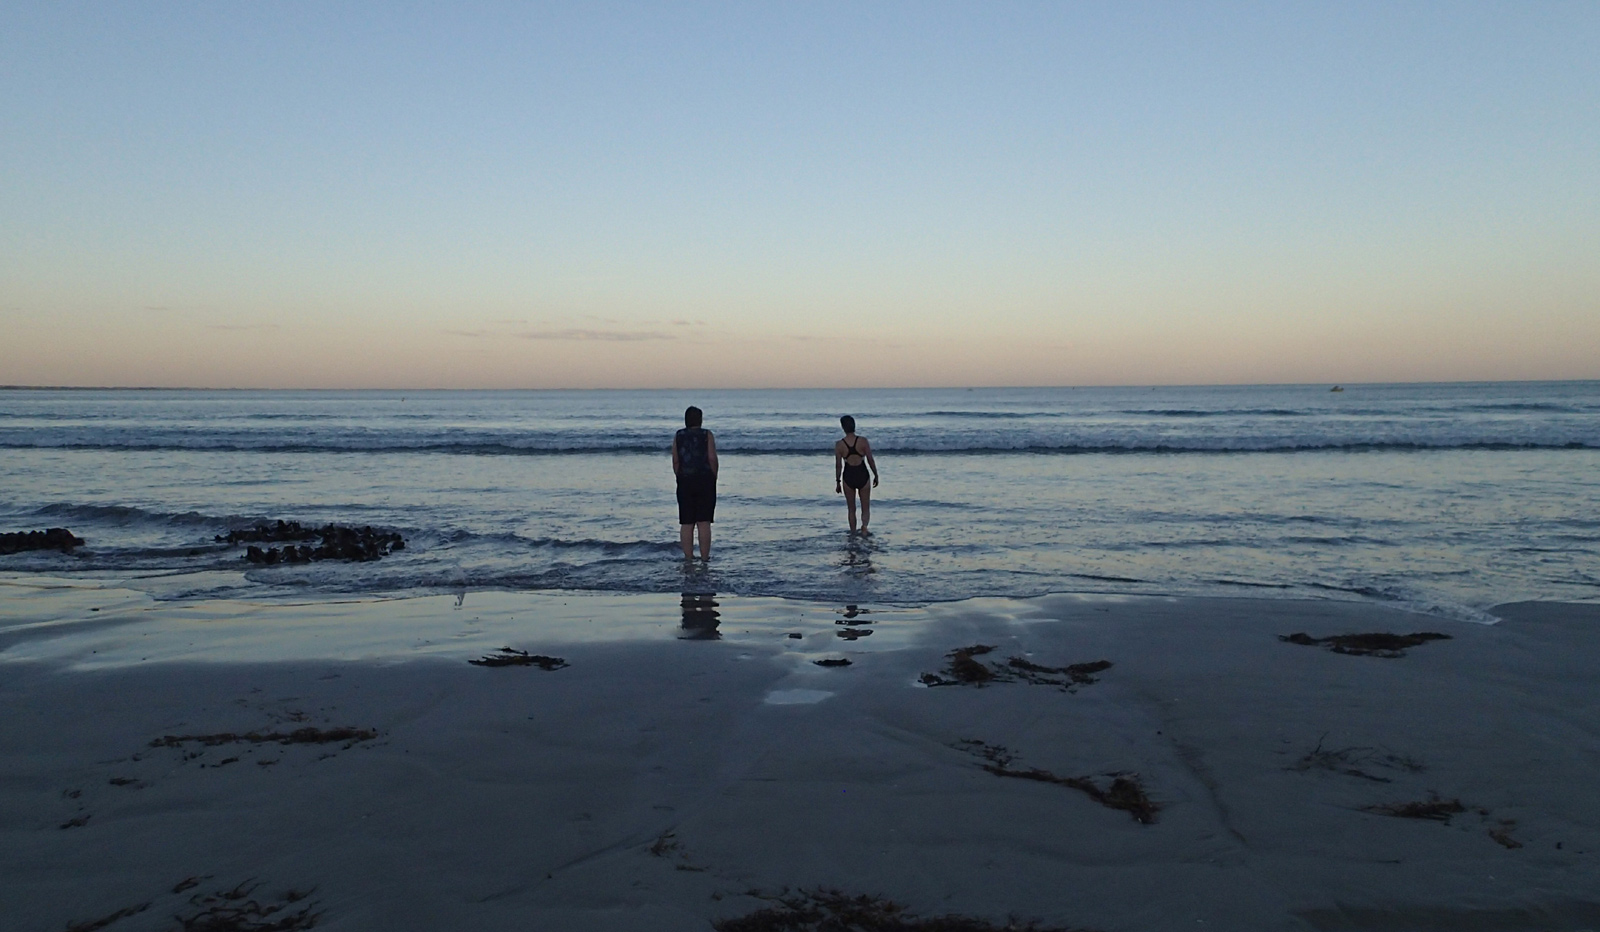 Paddler and swimmer in calm sea in twilight